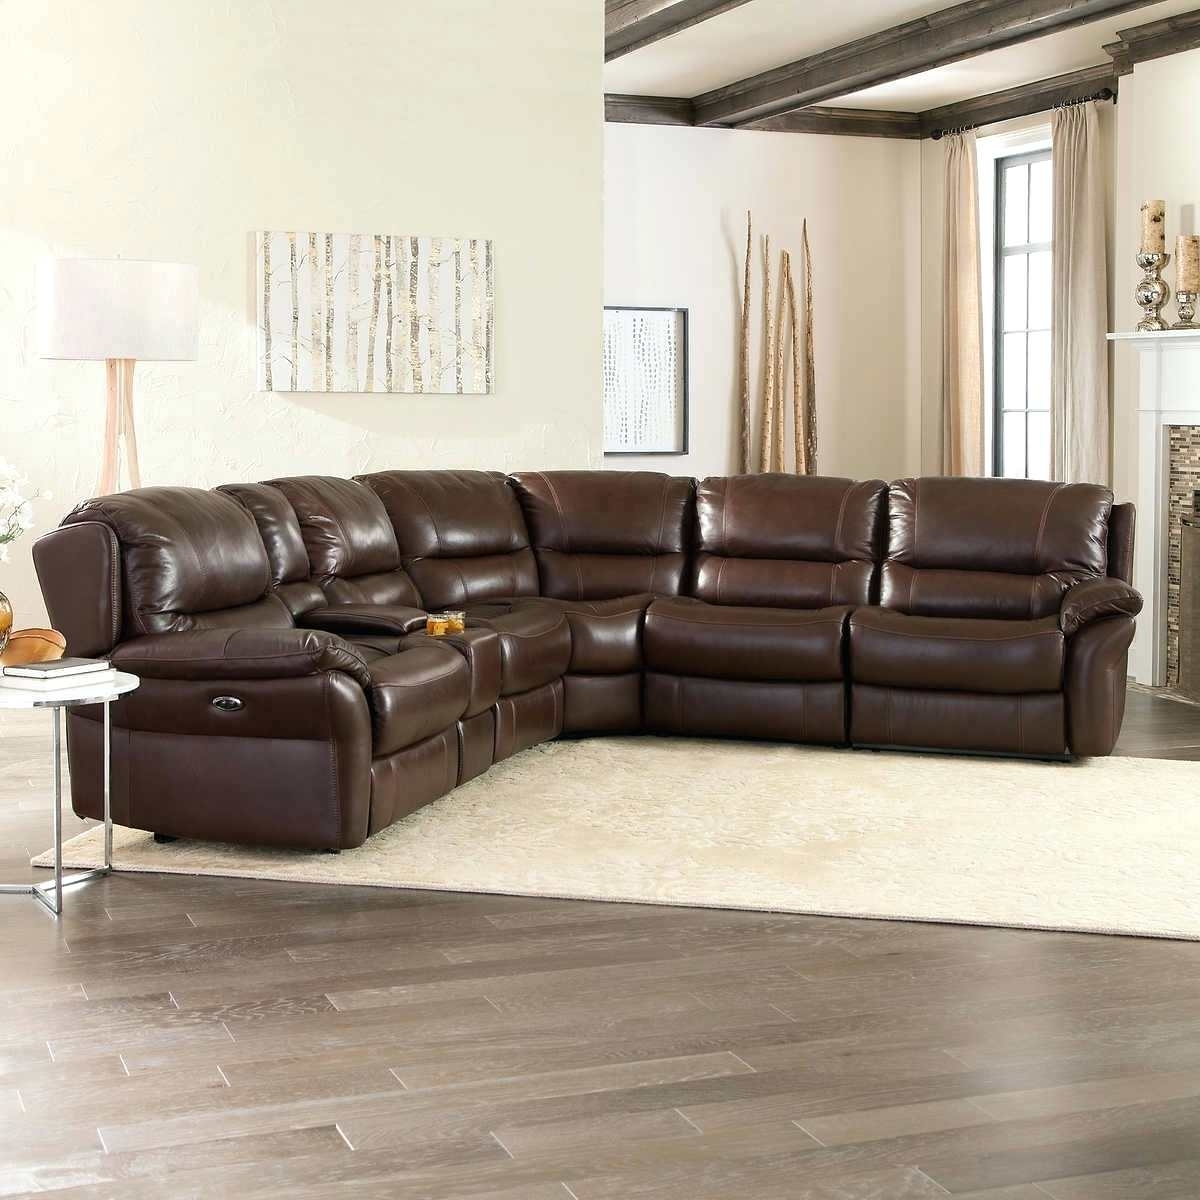 Costco Recliner S S Costco Reclining Sectional Sofas Costco Within Preferred Sectional Sofas With Electric Recliners (View 3 of 20)